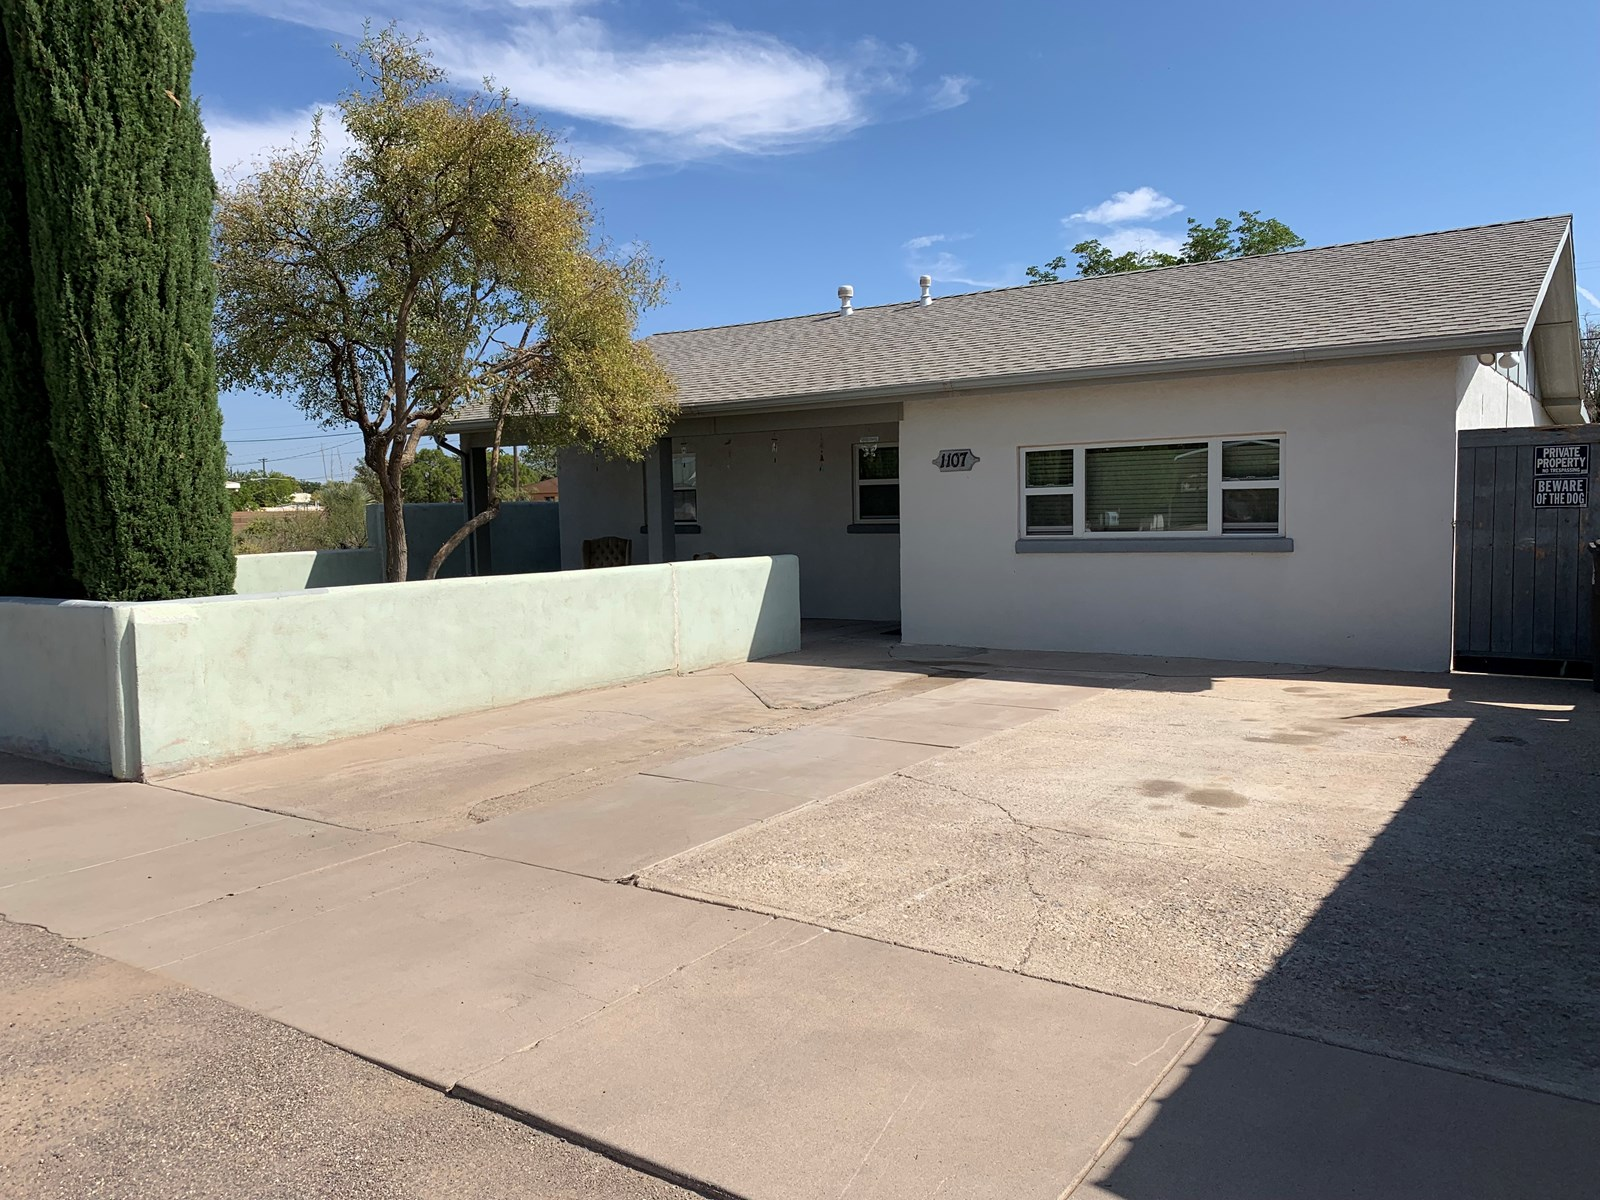 Home in Deming NM for sale